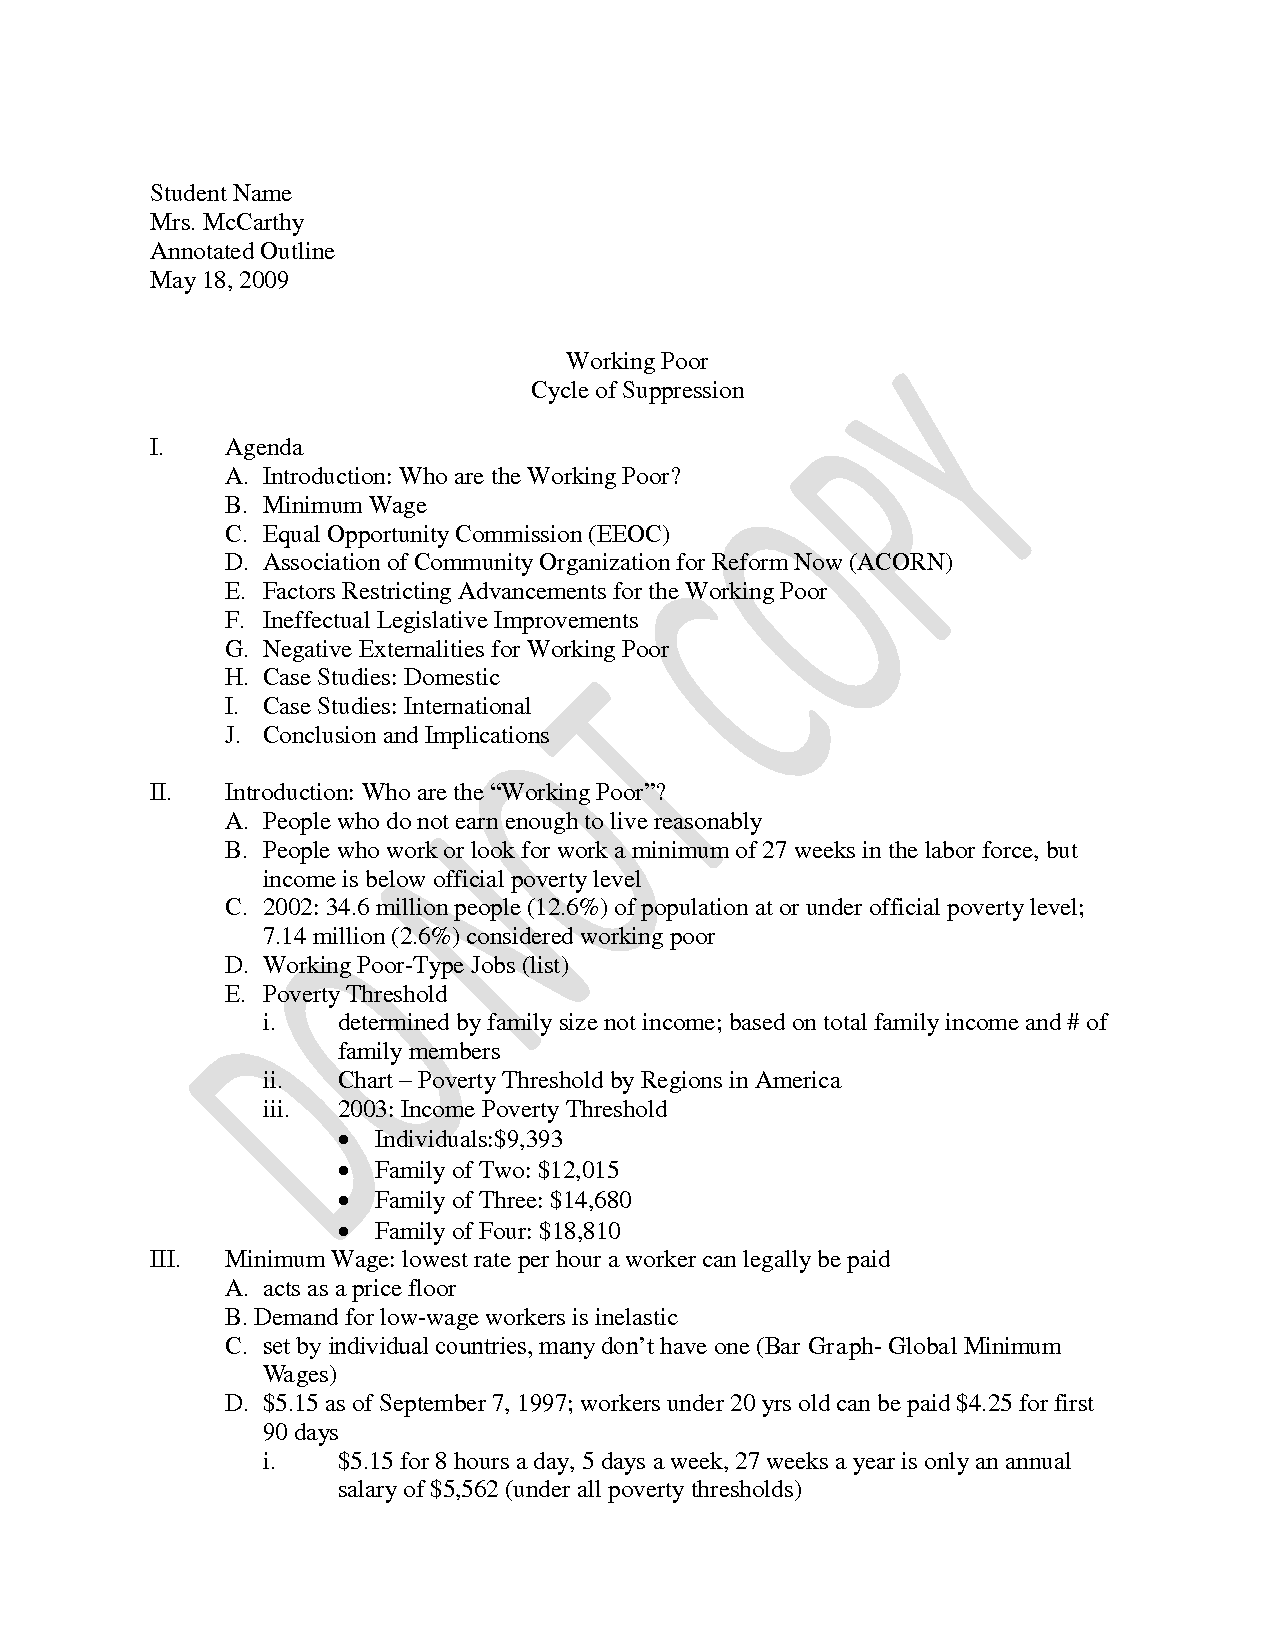 annotated outline example in apa format community essay example